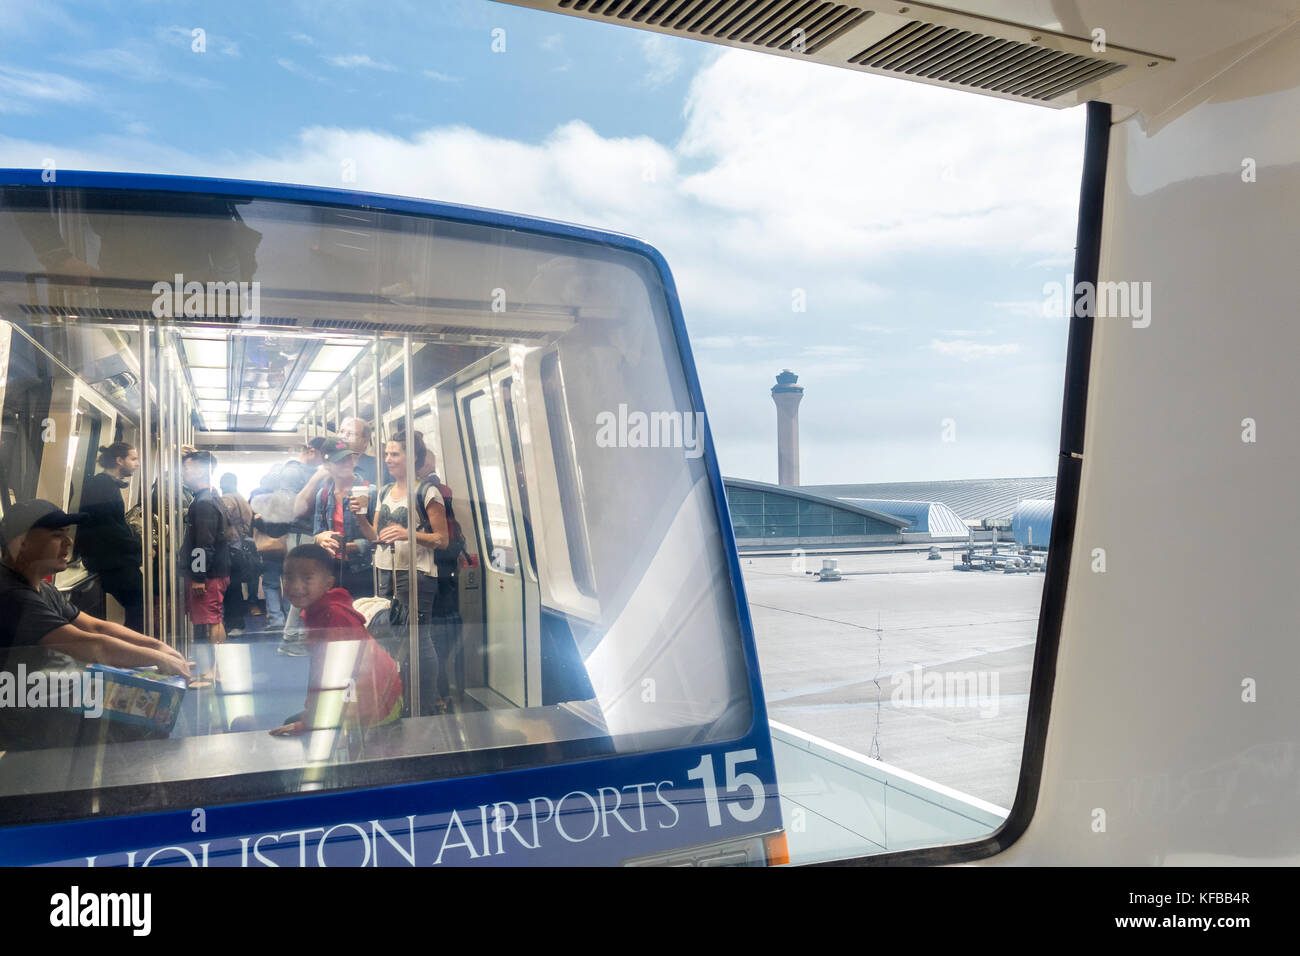 Houston George Bush Intercontinental Airport people mover train and control tower at international airport Houston - Stock Image